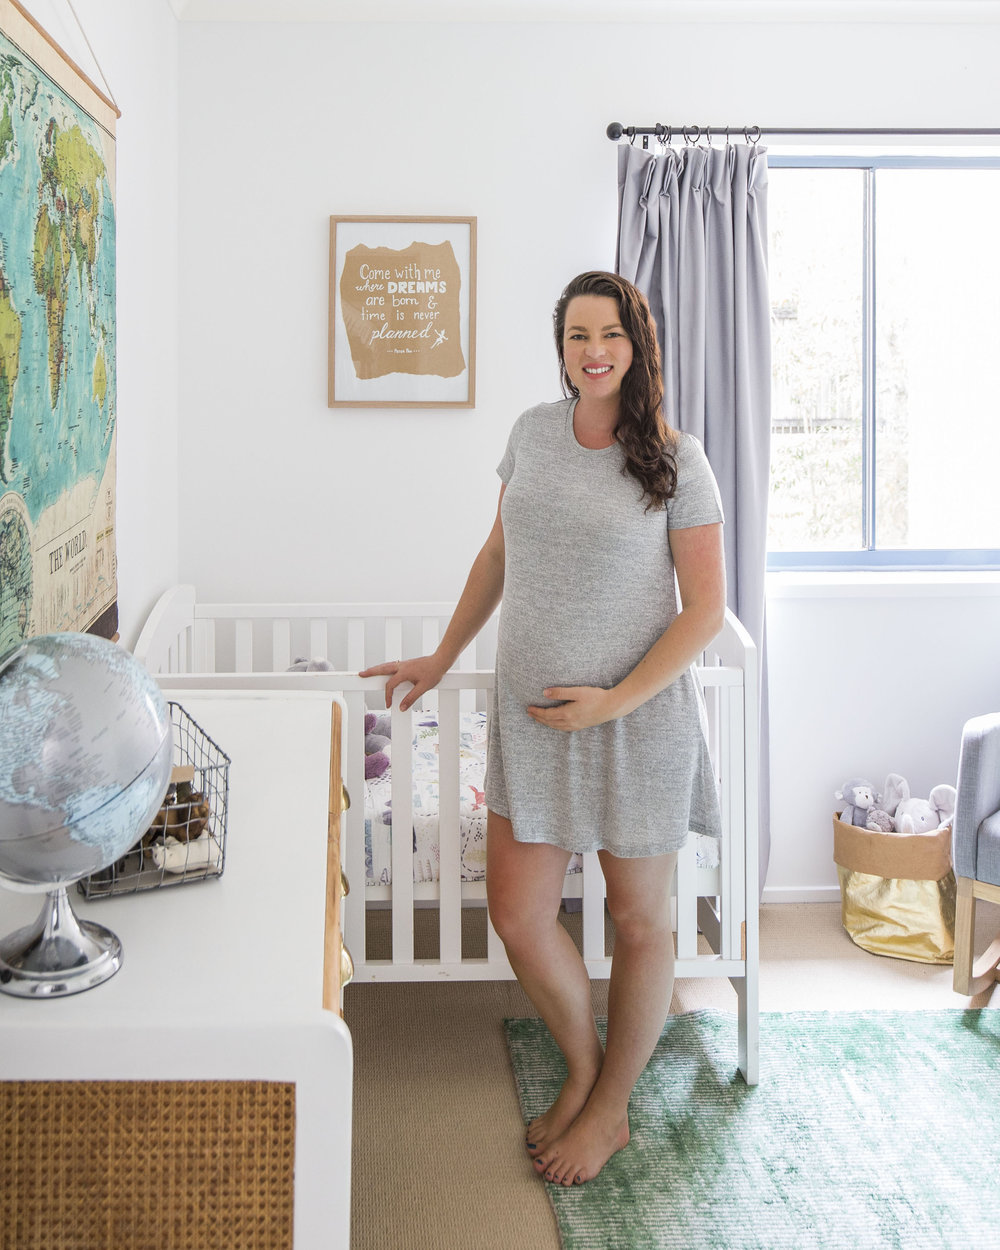 Tanika's Baby Room - Nursery - Interior Design - Tanika Blair Stying & Photography - IMG_9069.jpg